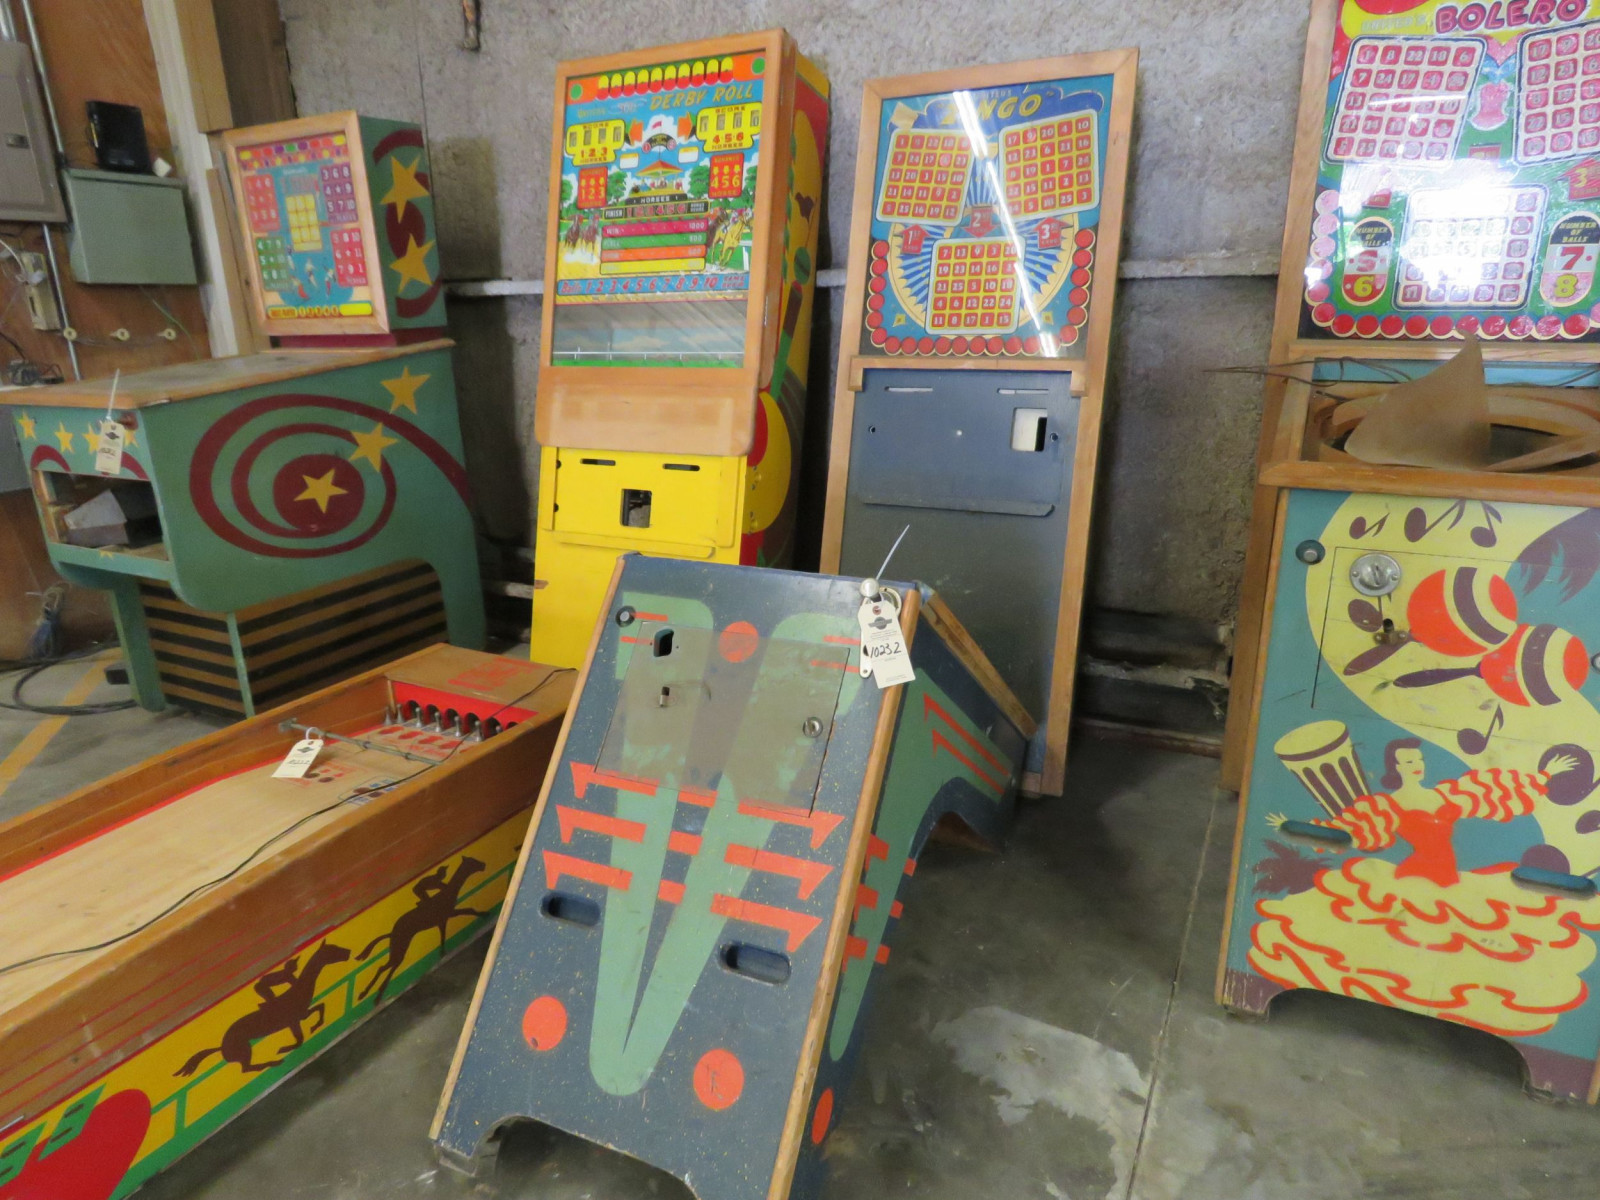 Vintage Ziungo Pinball Machine by United - Image 1